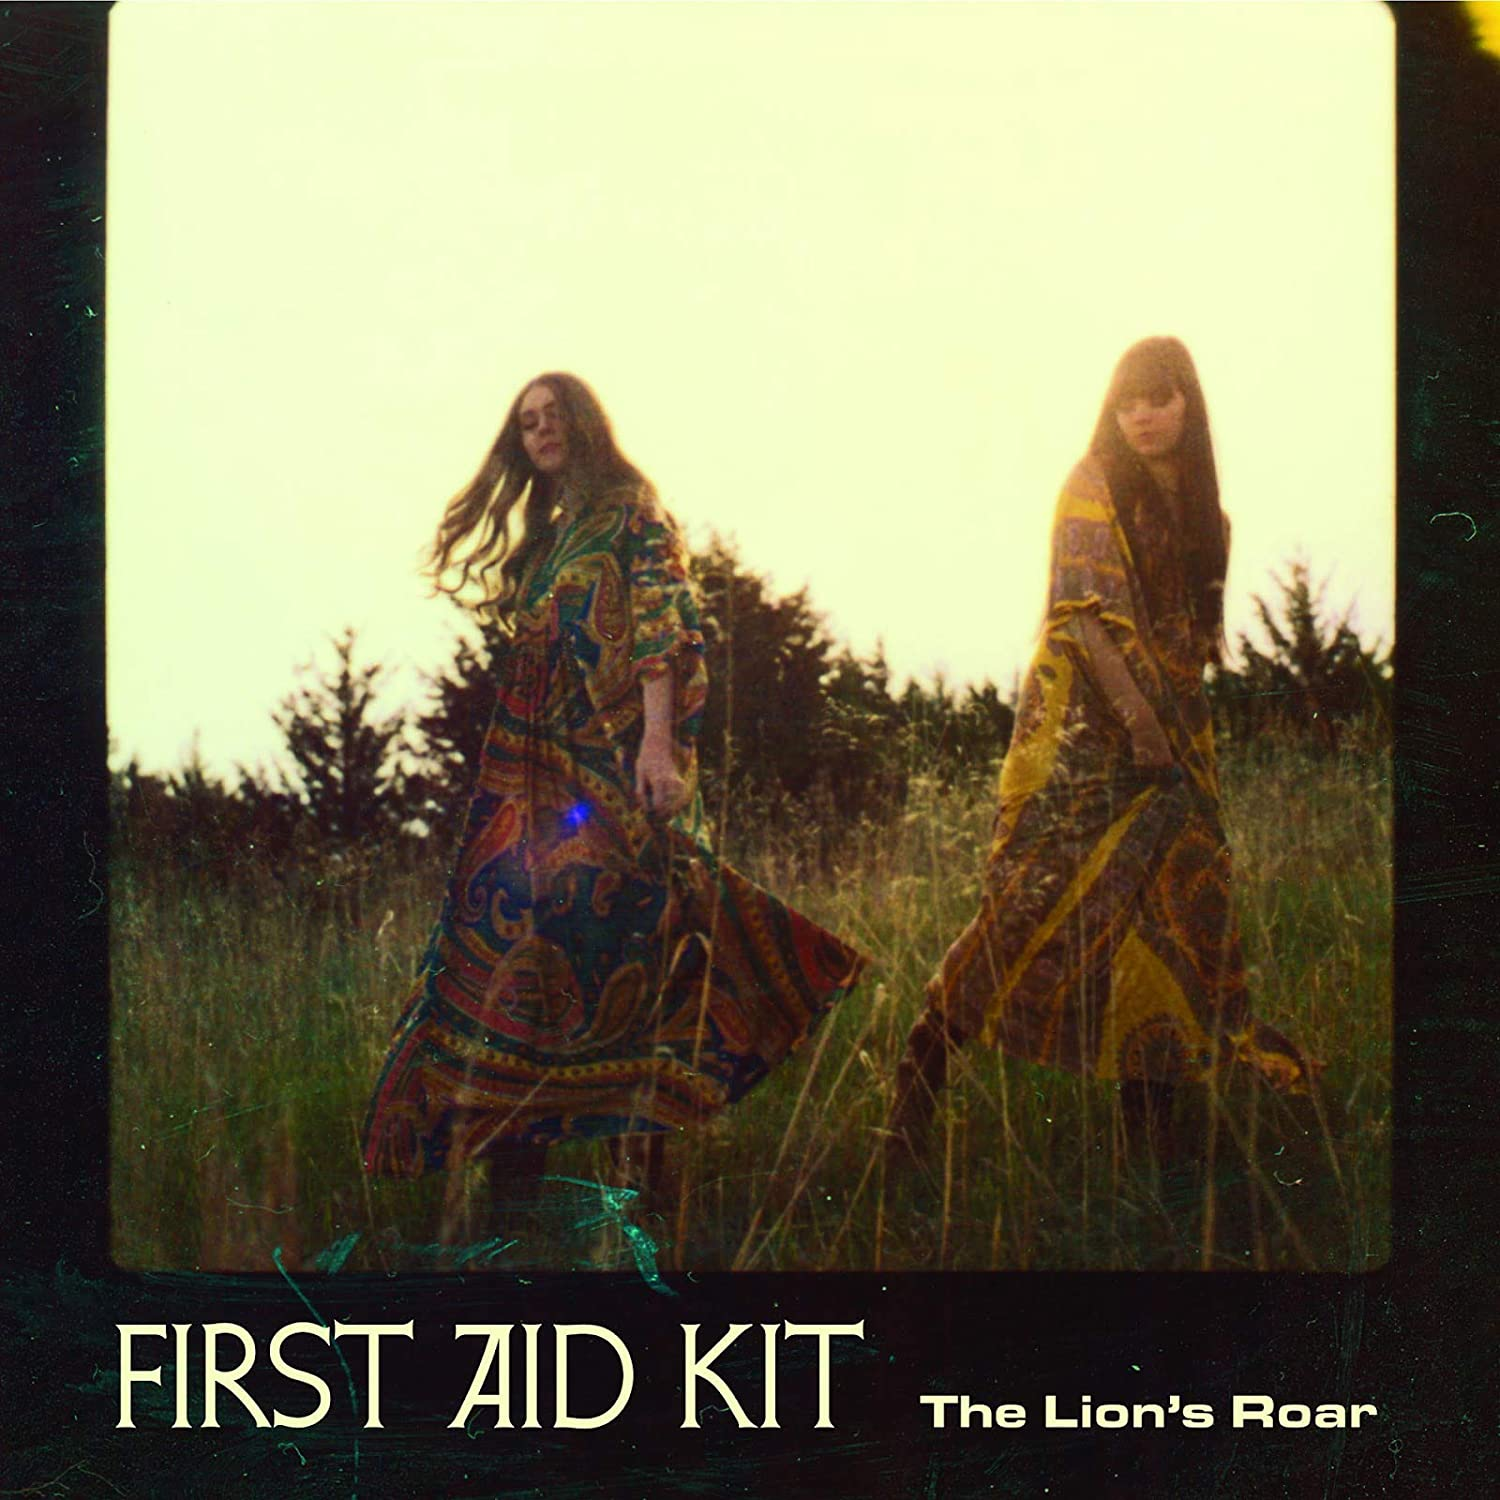 First Aid Kit/The Lion's Roar [LP]